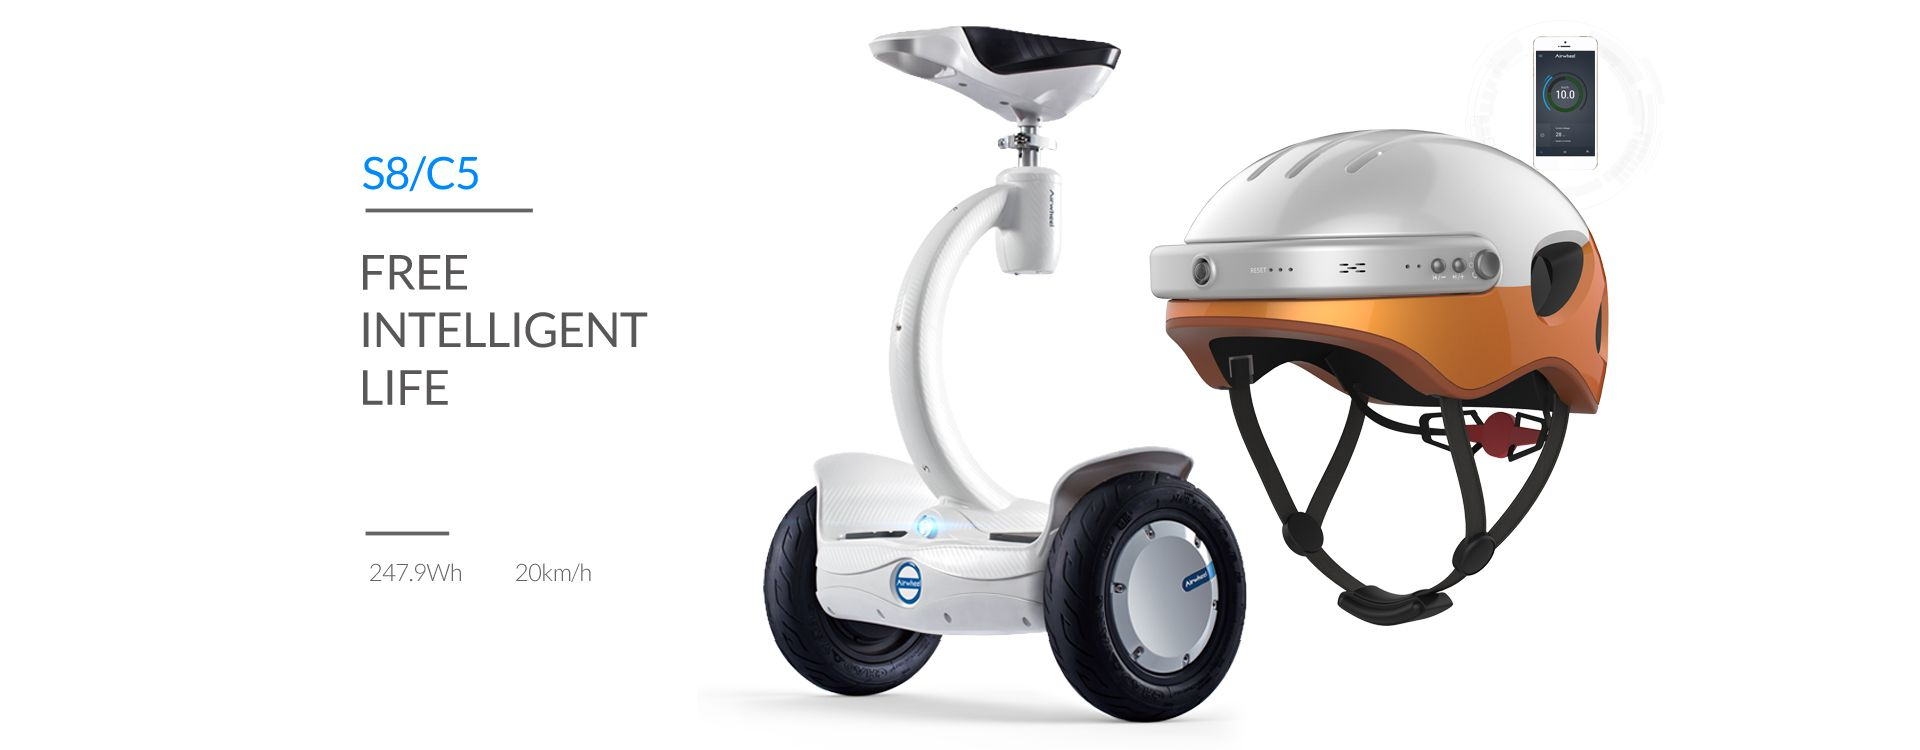 airwheel_s8_scooter_banner